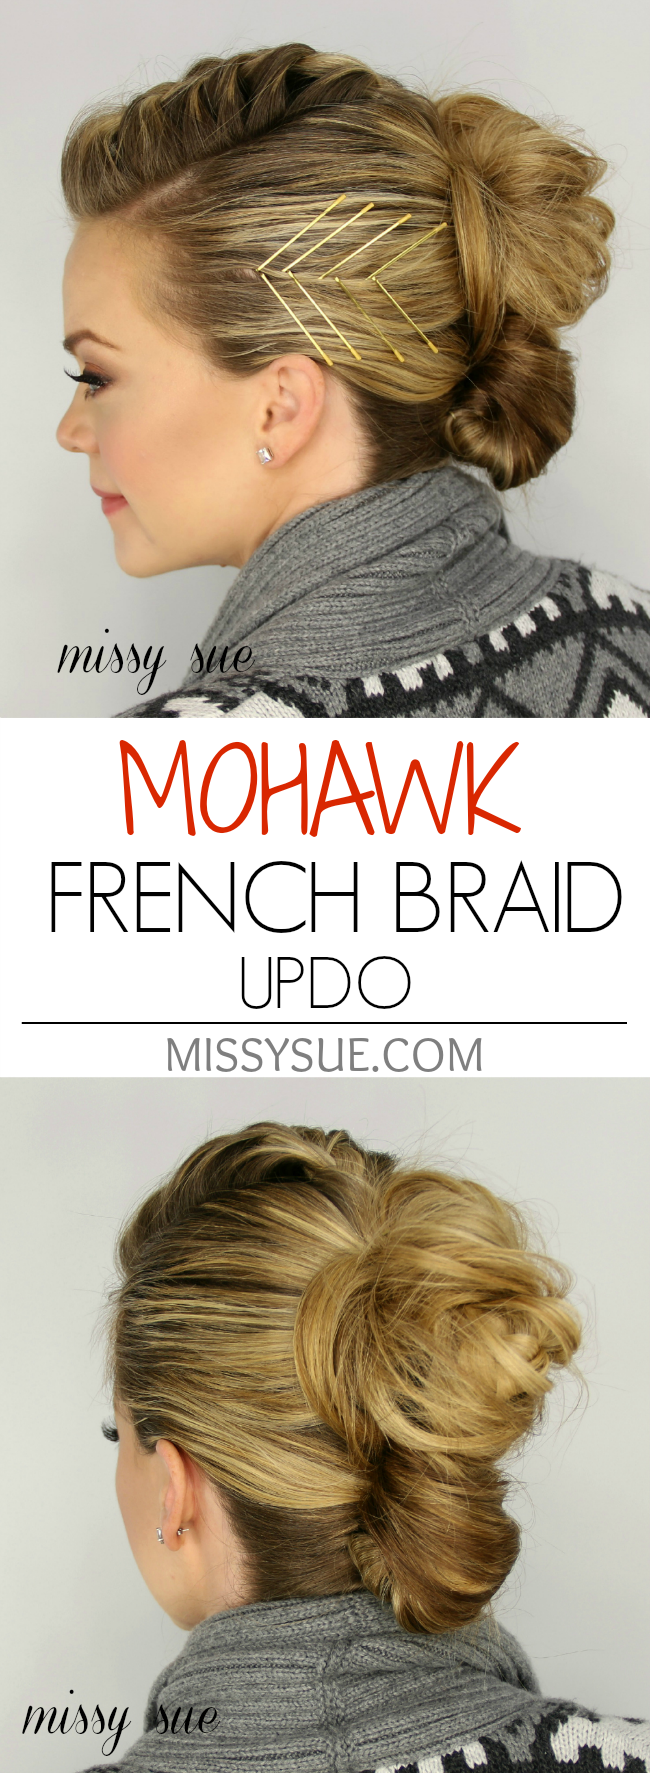 Mohawk french braid updo best french braid updo french braid and